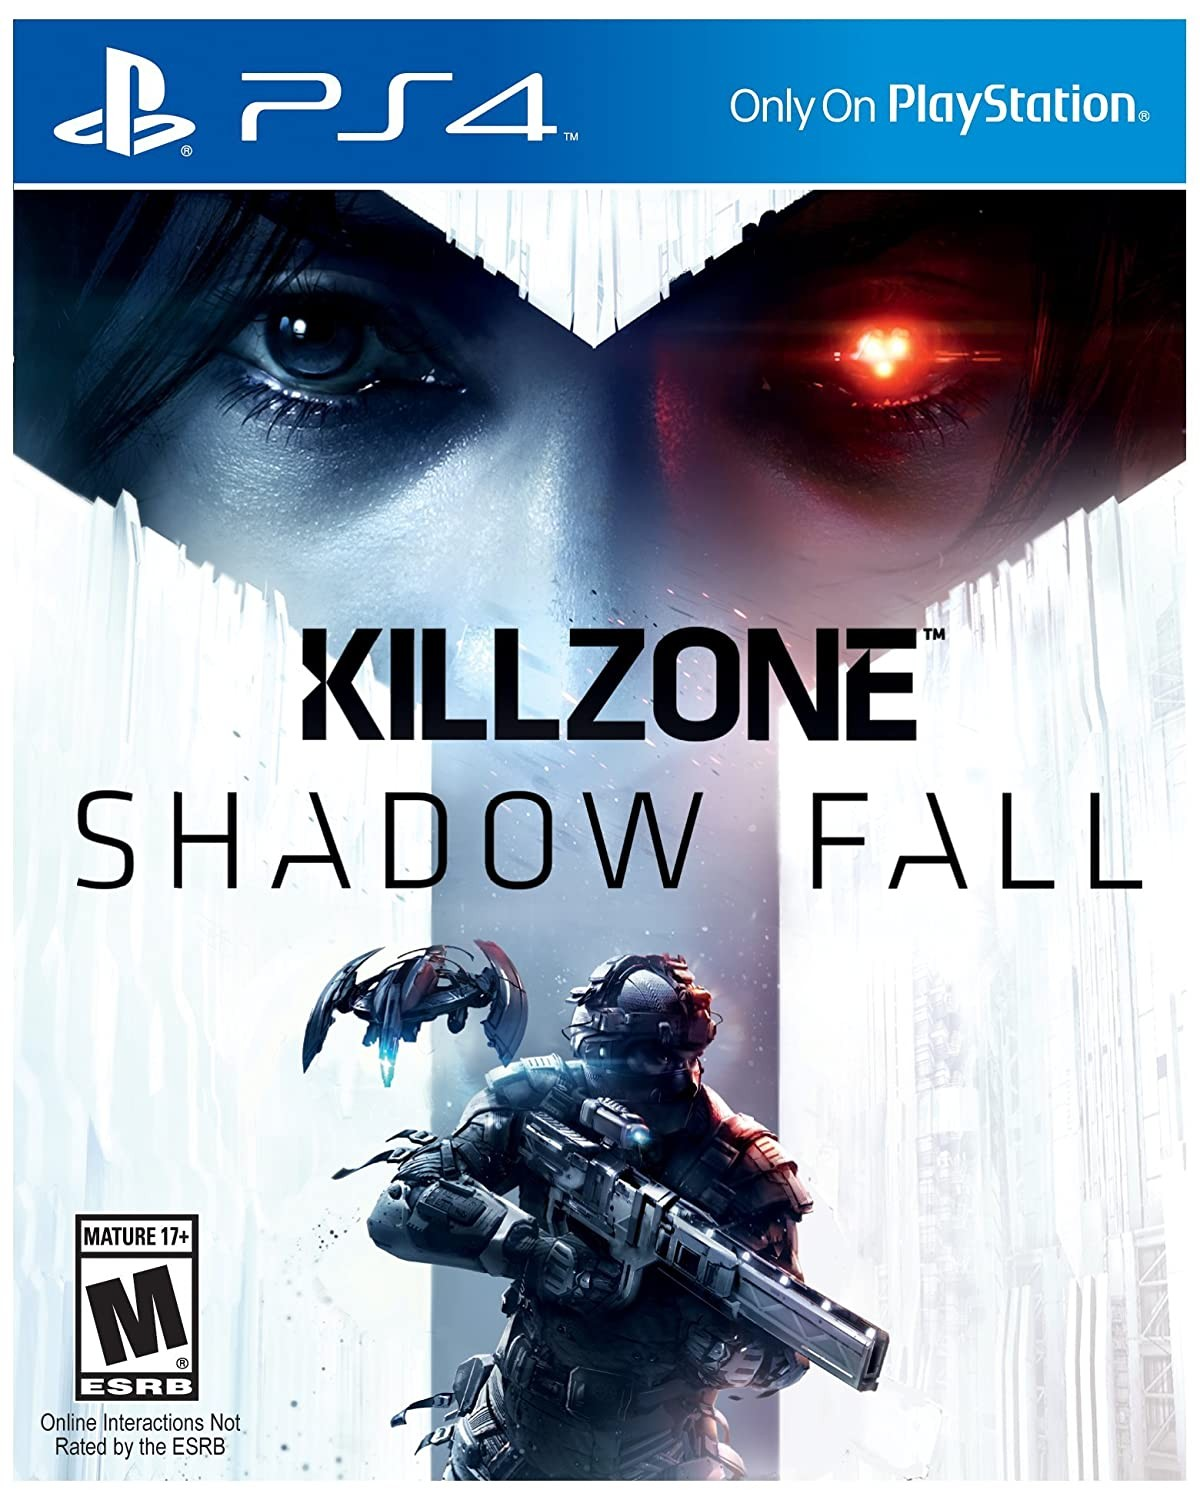 Killzone: В плену сумрака | Killzone: Shadow Fall (англ) PS4